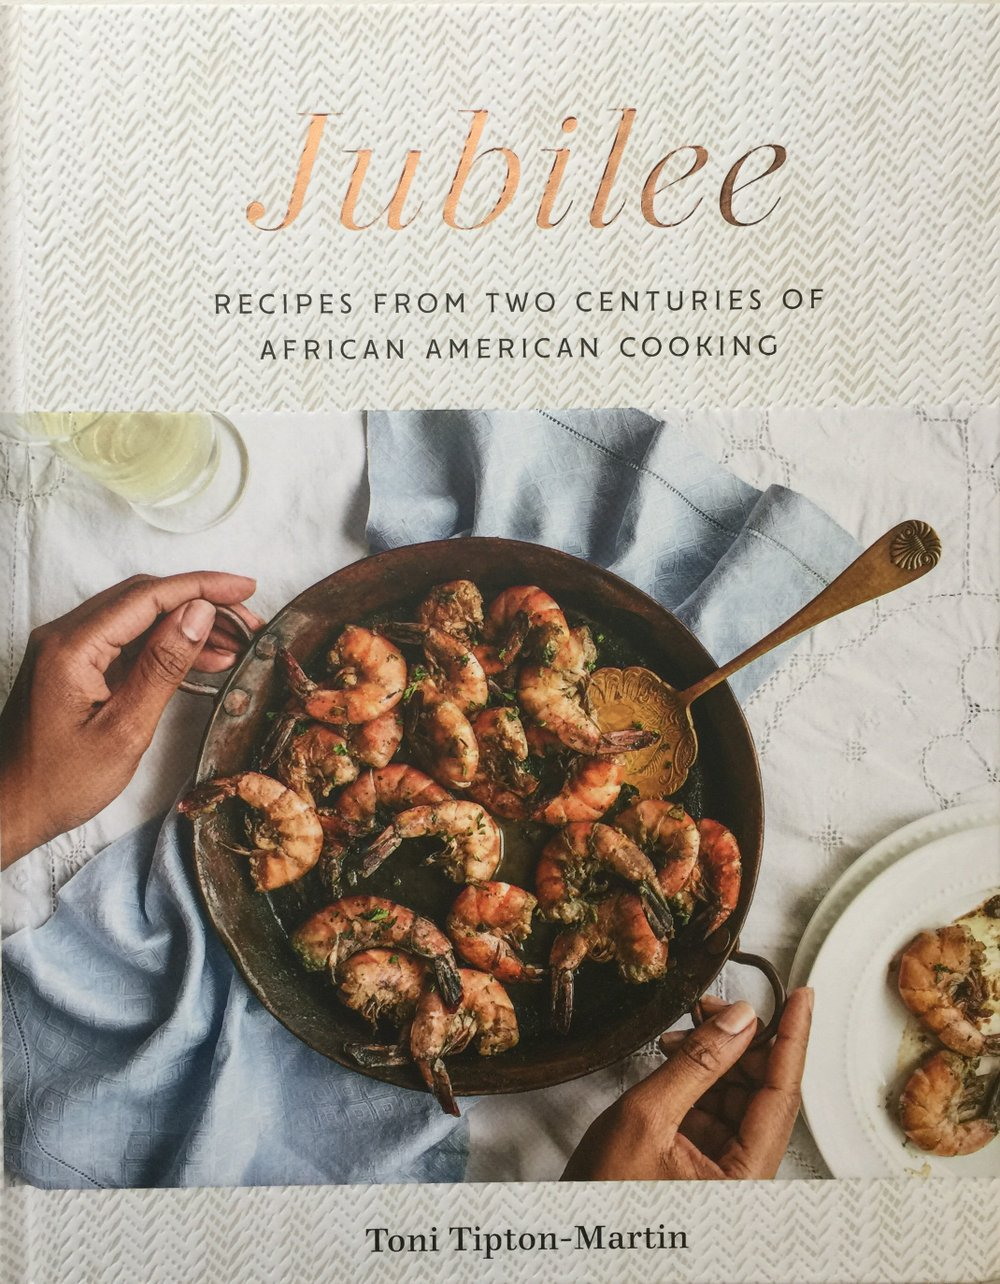 Jubilee: Recipes From Two Centuries of African American Cooking by Toni Tipton-Martin